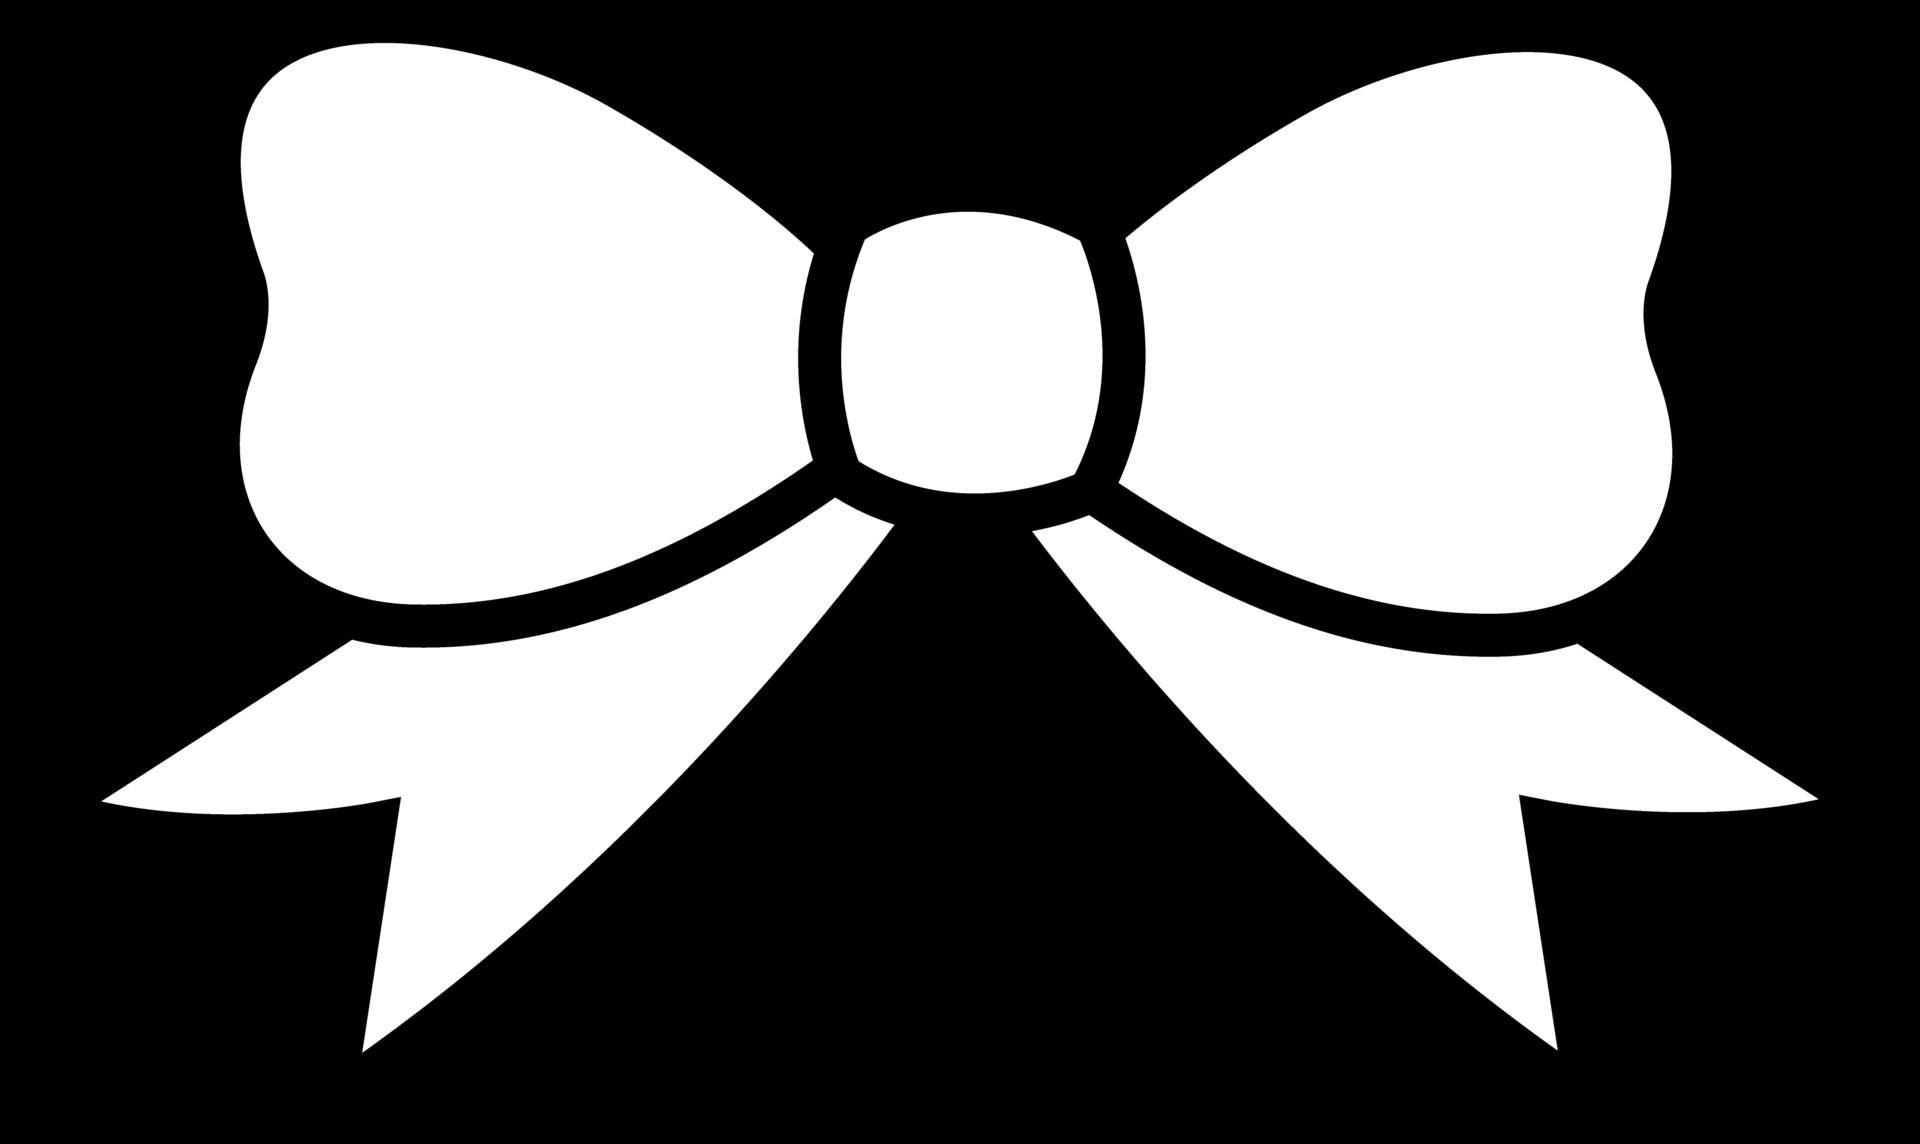 Bow clipart black and white:  - Bow Clipart